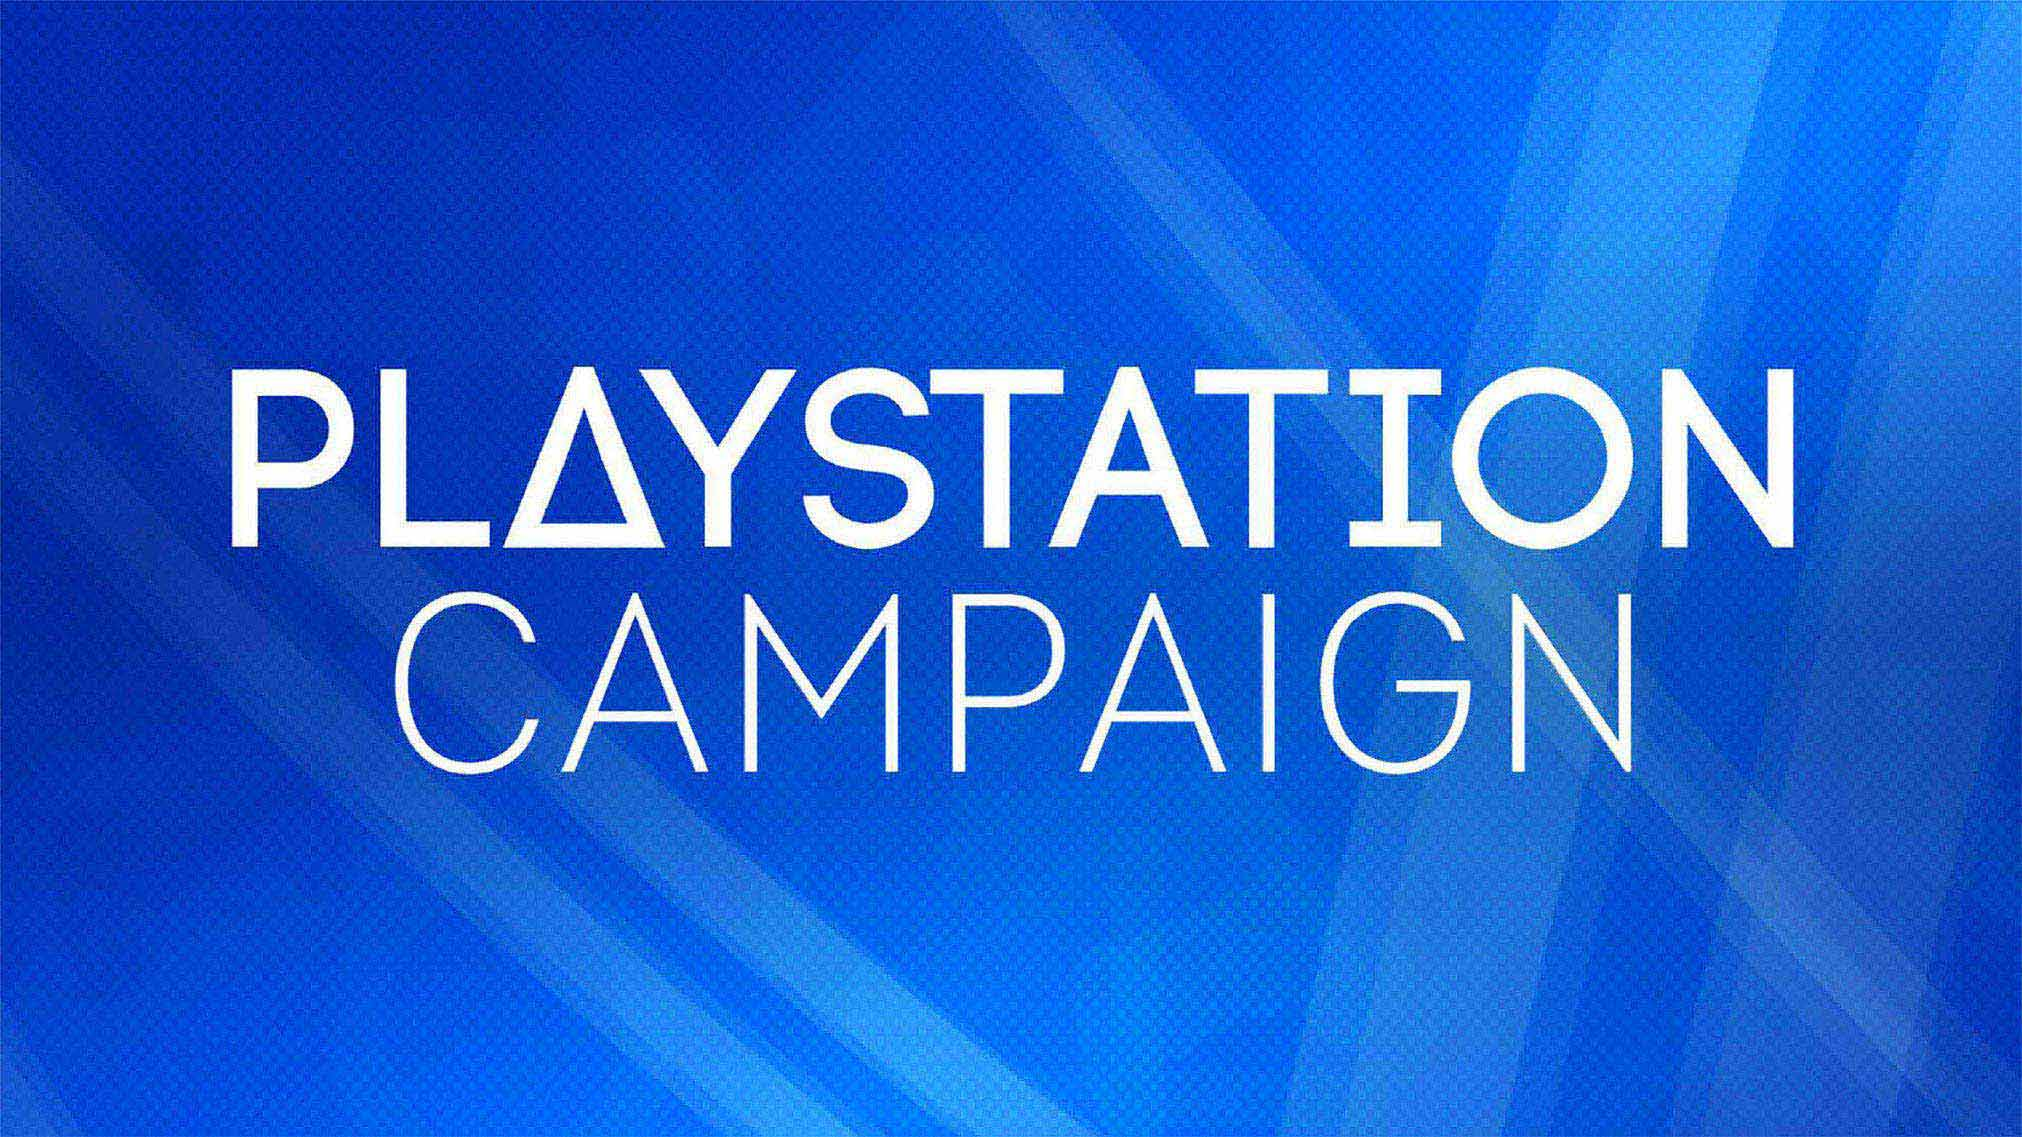 Tasked with creating a concept marketing campaign for a brand of our choice, I decided to make an inclusivity campaign for PlayStation.